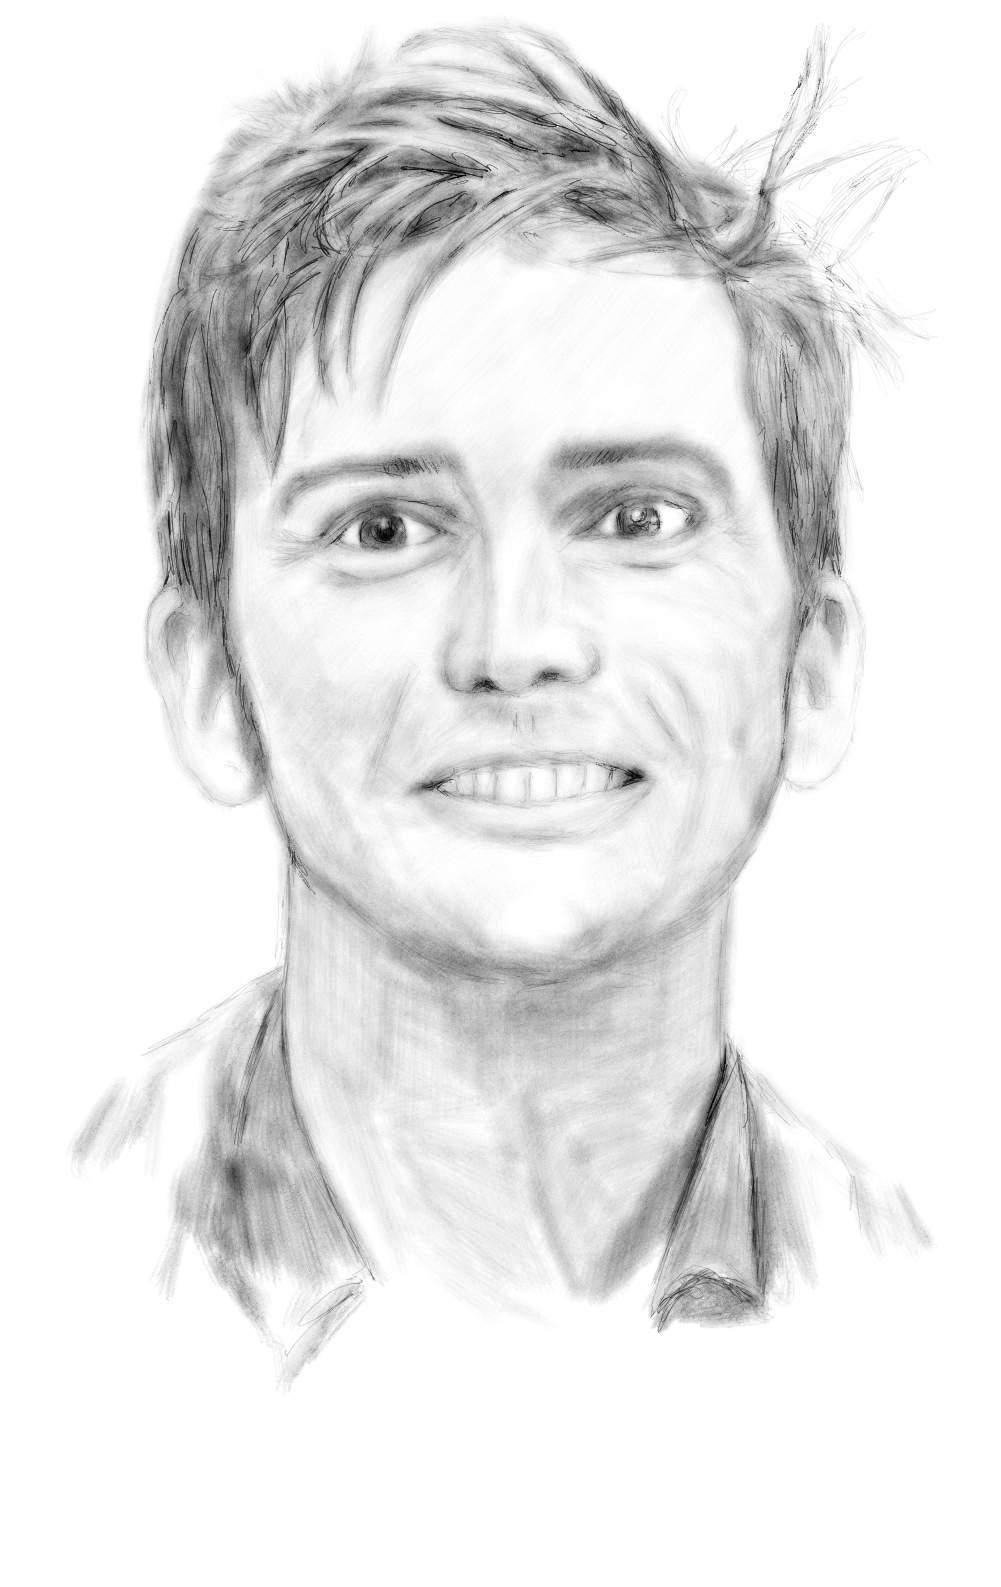 David_Tennant_by_ZootCadillac.jpg